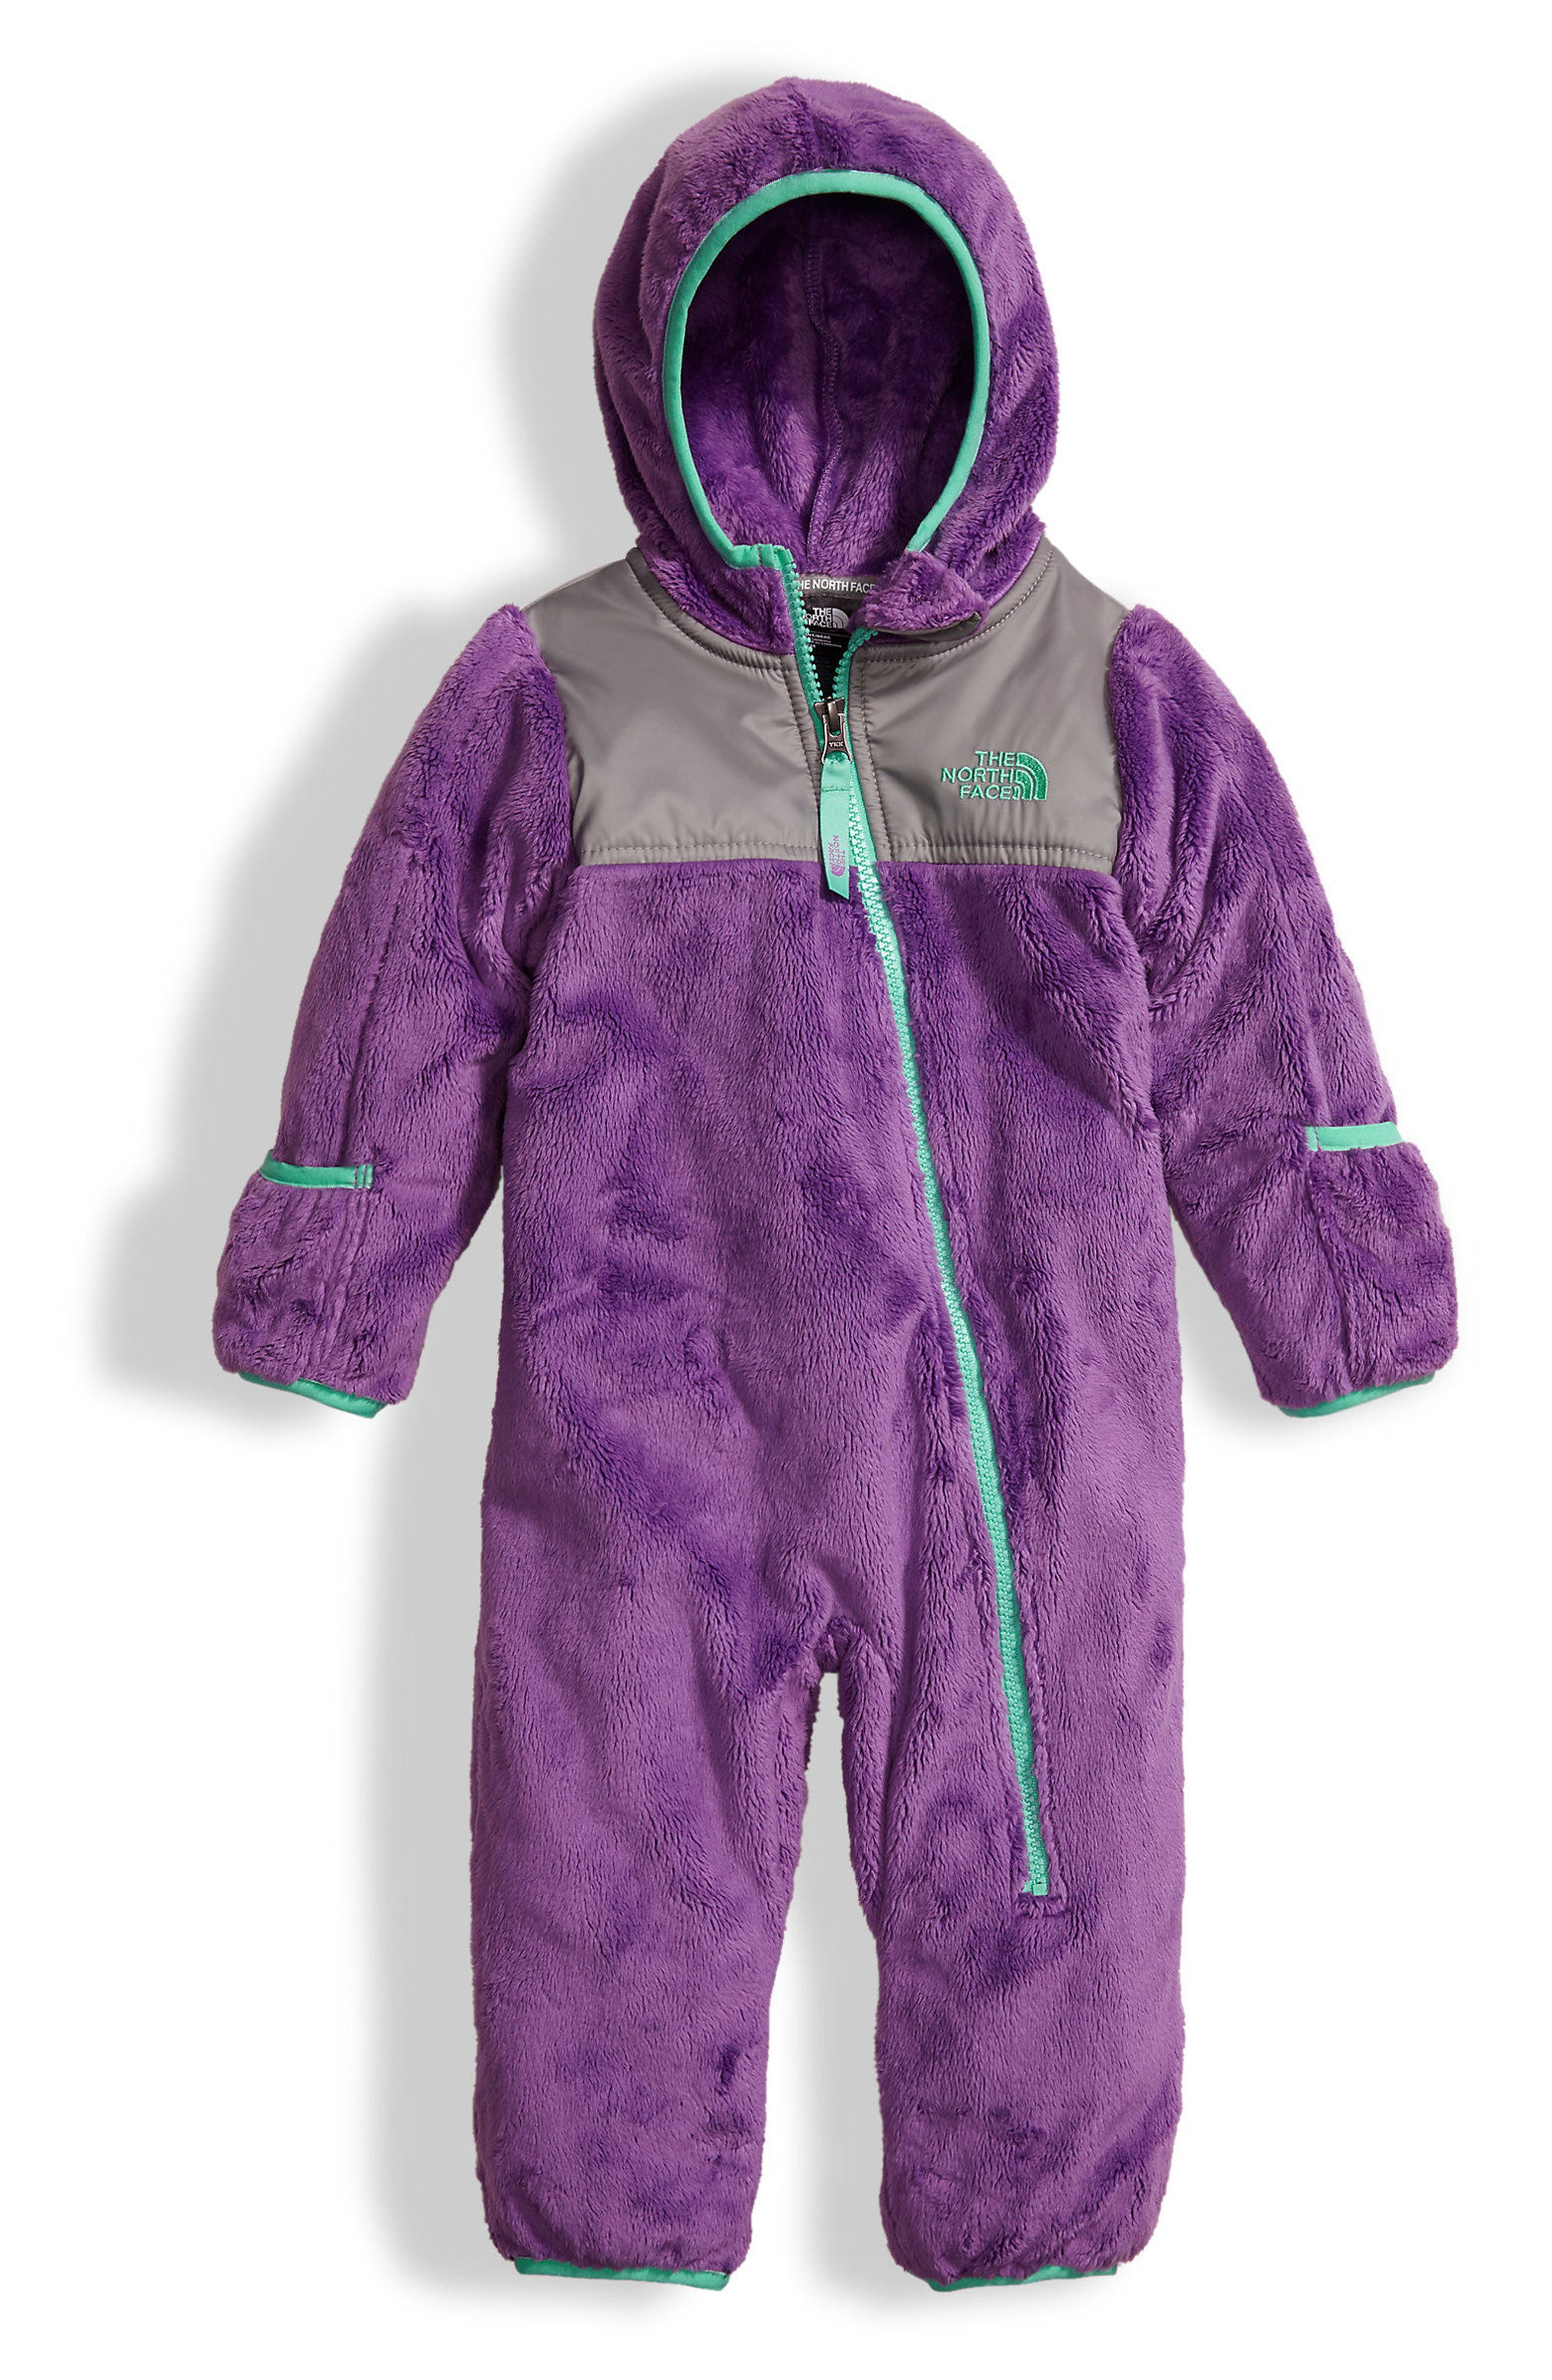 THE NORTH FACE, 'Oso' Hooded Fleece Romper, Main thumbnail 1, color, 511